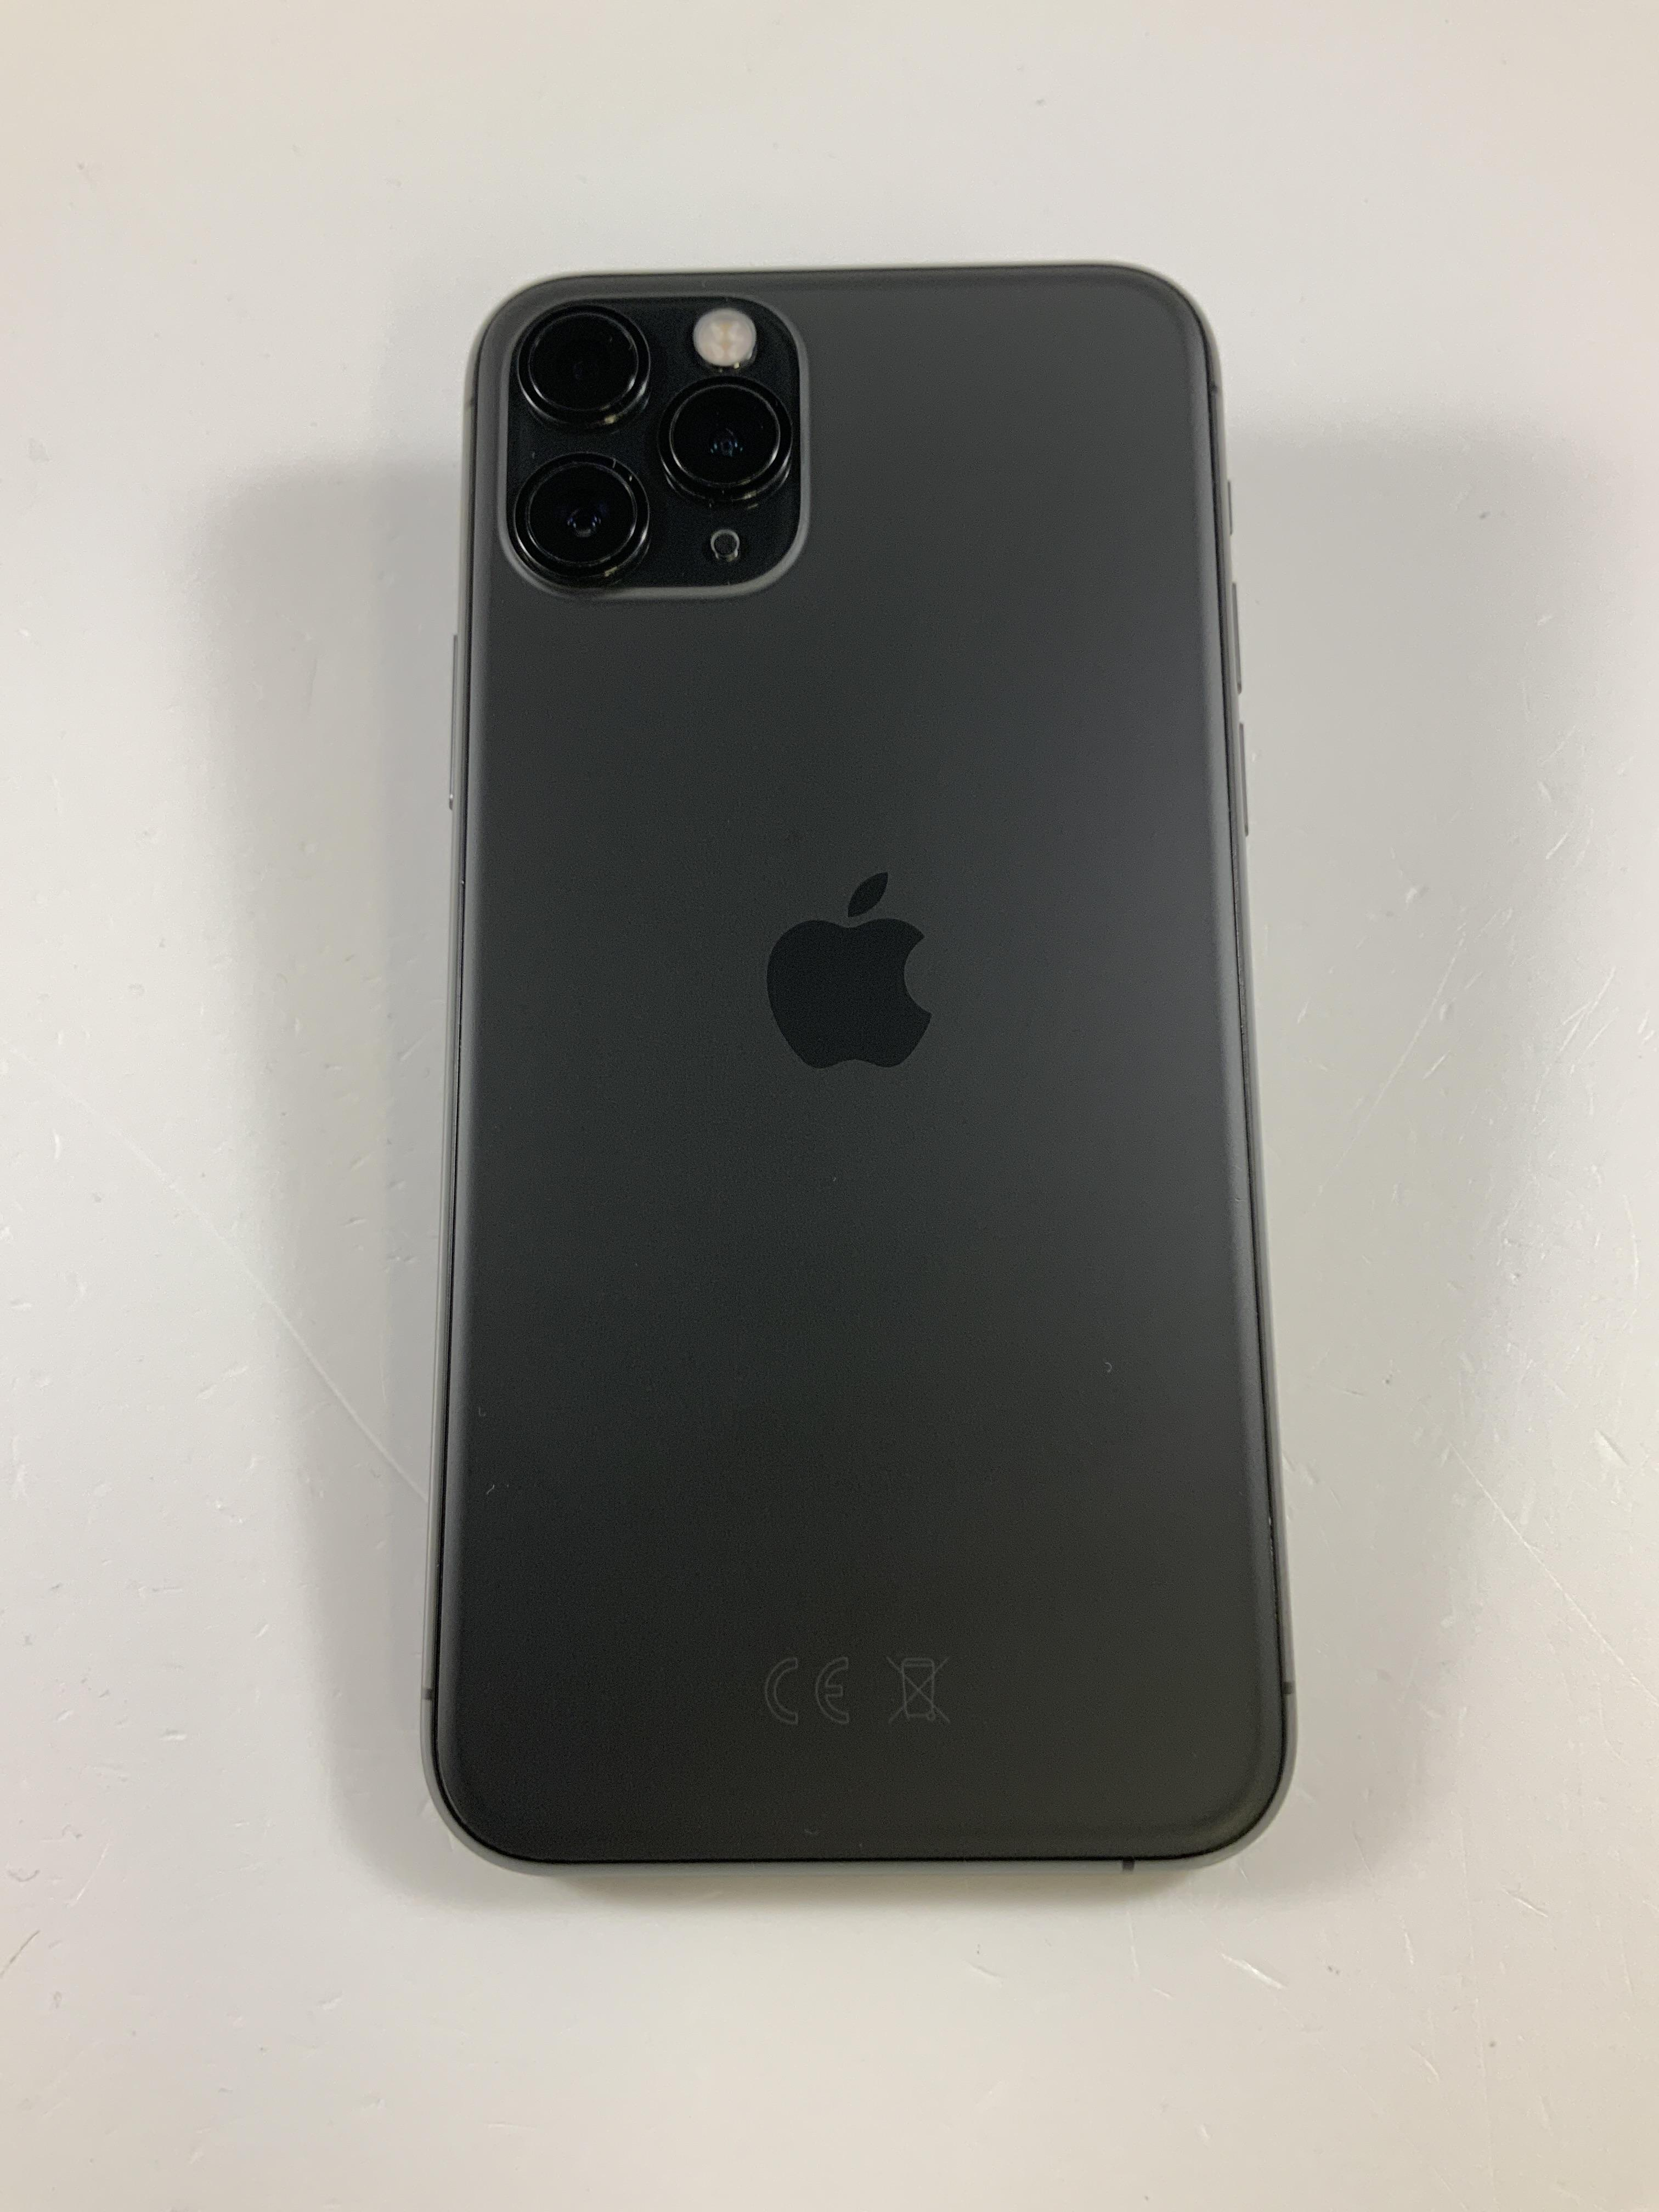 iPhone 11 Pro 64GB, 64GB, Space Gray, immagine 2